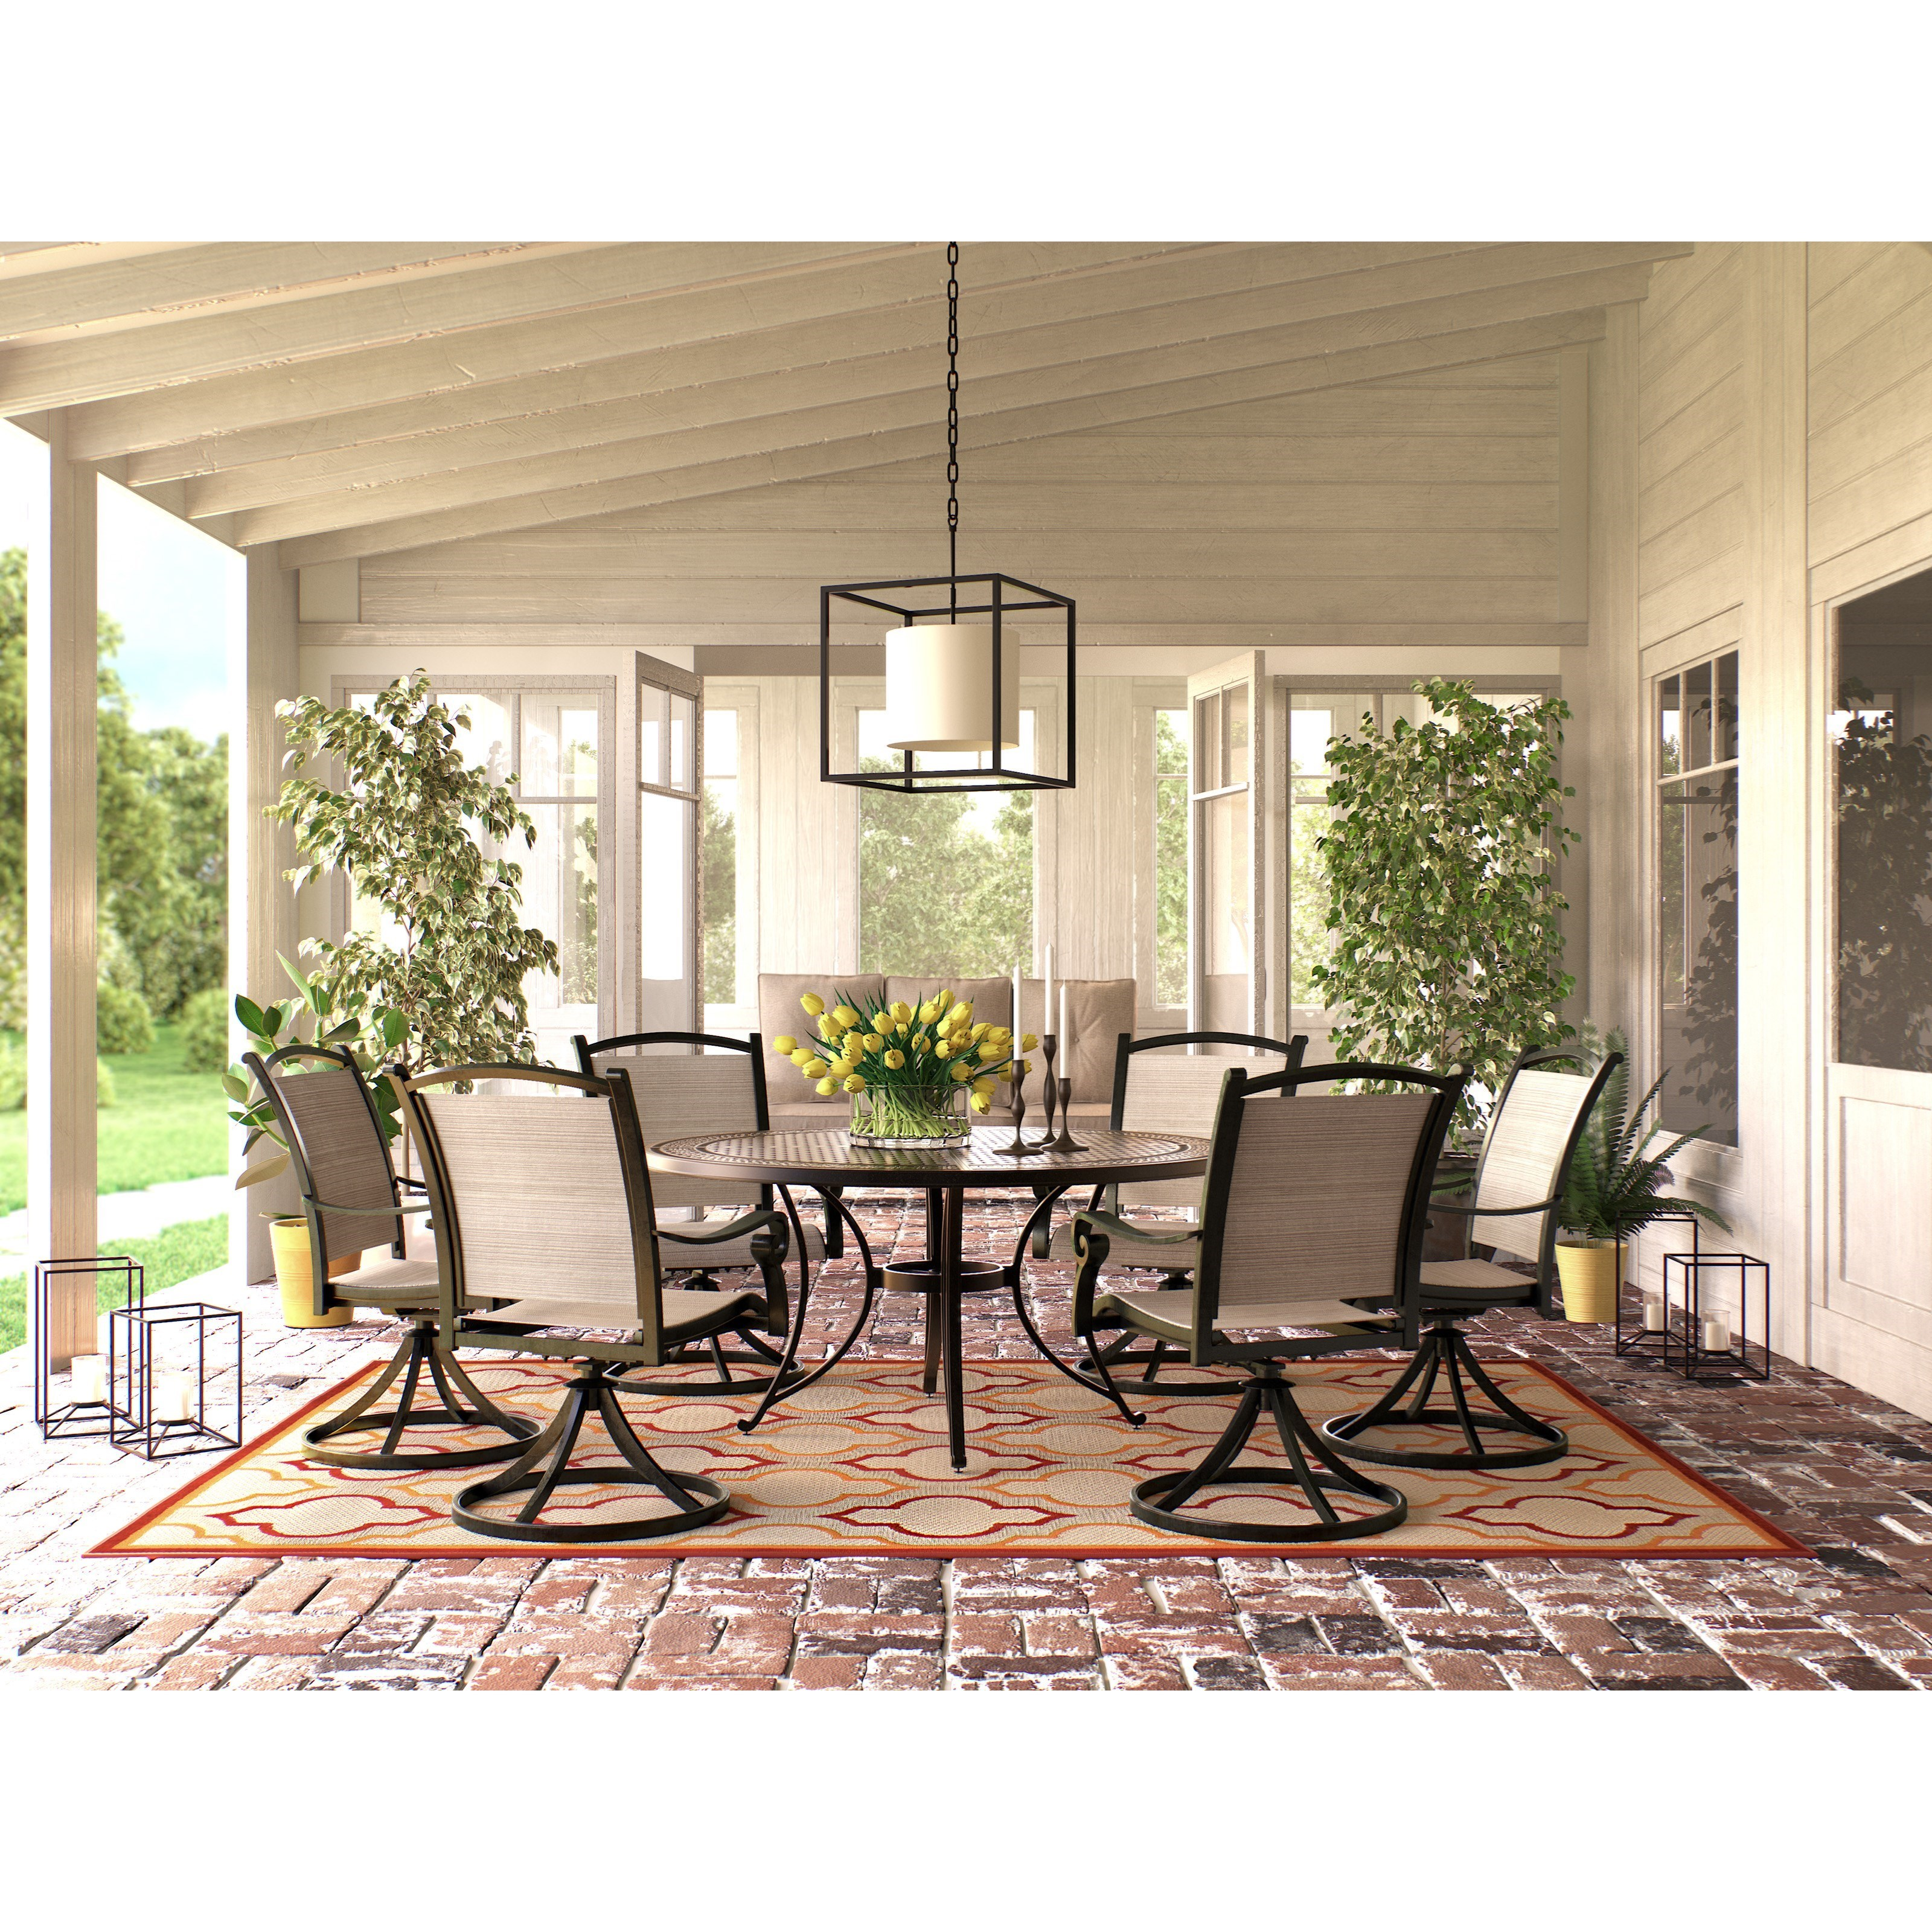 Signature Design By Ashley Burnella 7 Piece Outdoor Dining Set Royal Furniture Outdoor